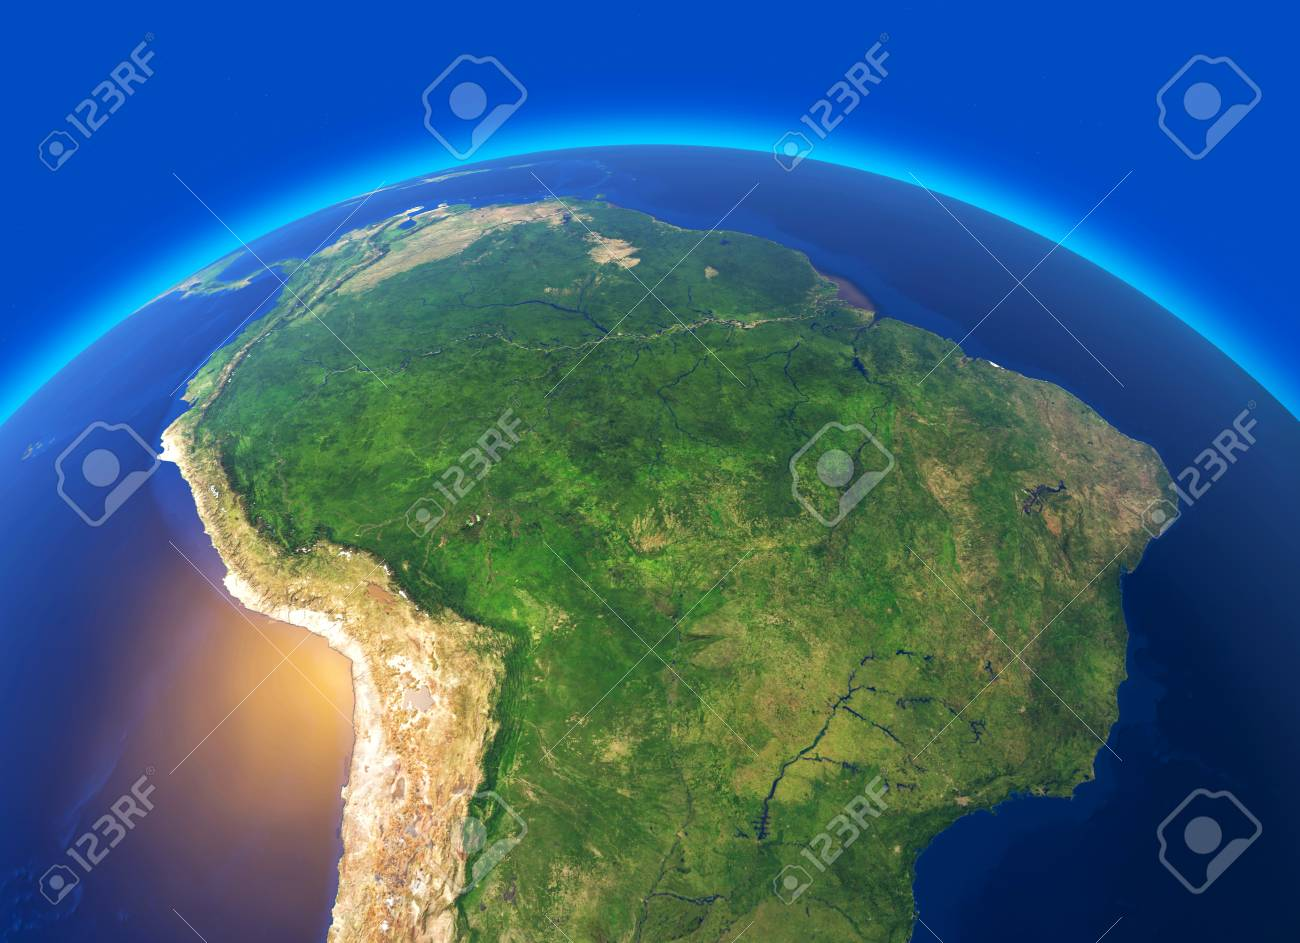 Satellite View Of The Amazon, Map, States Of South America, Reliefs on